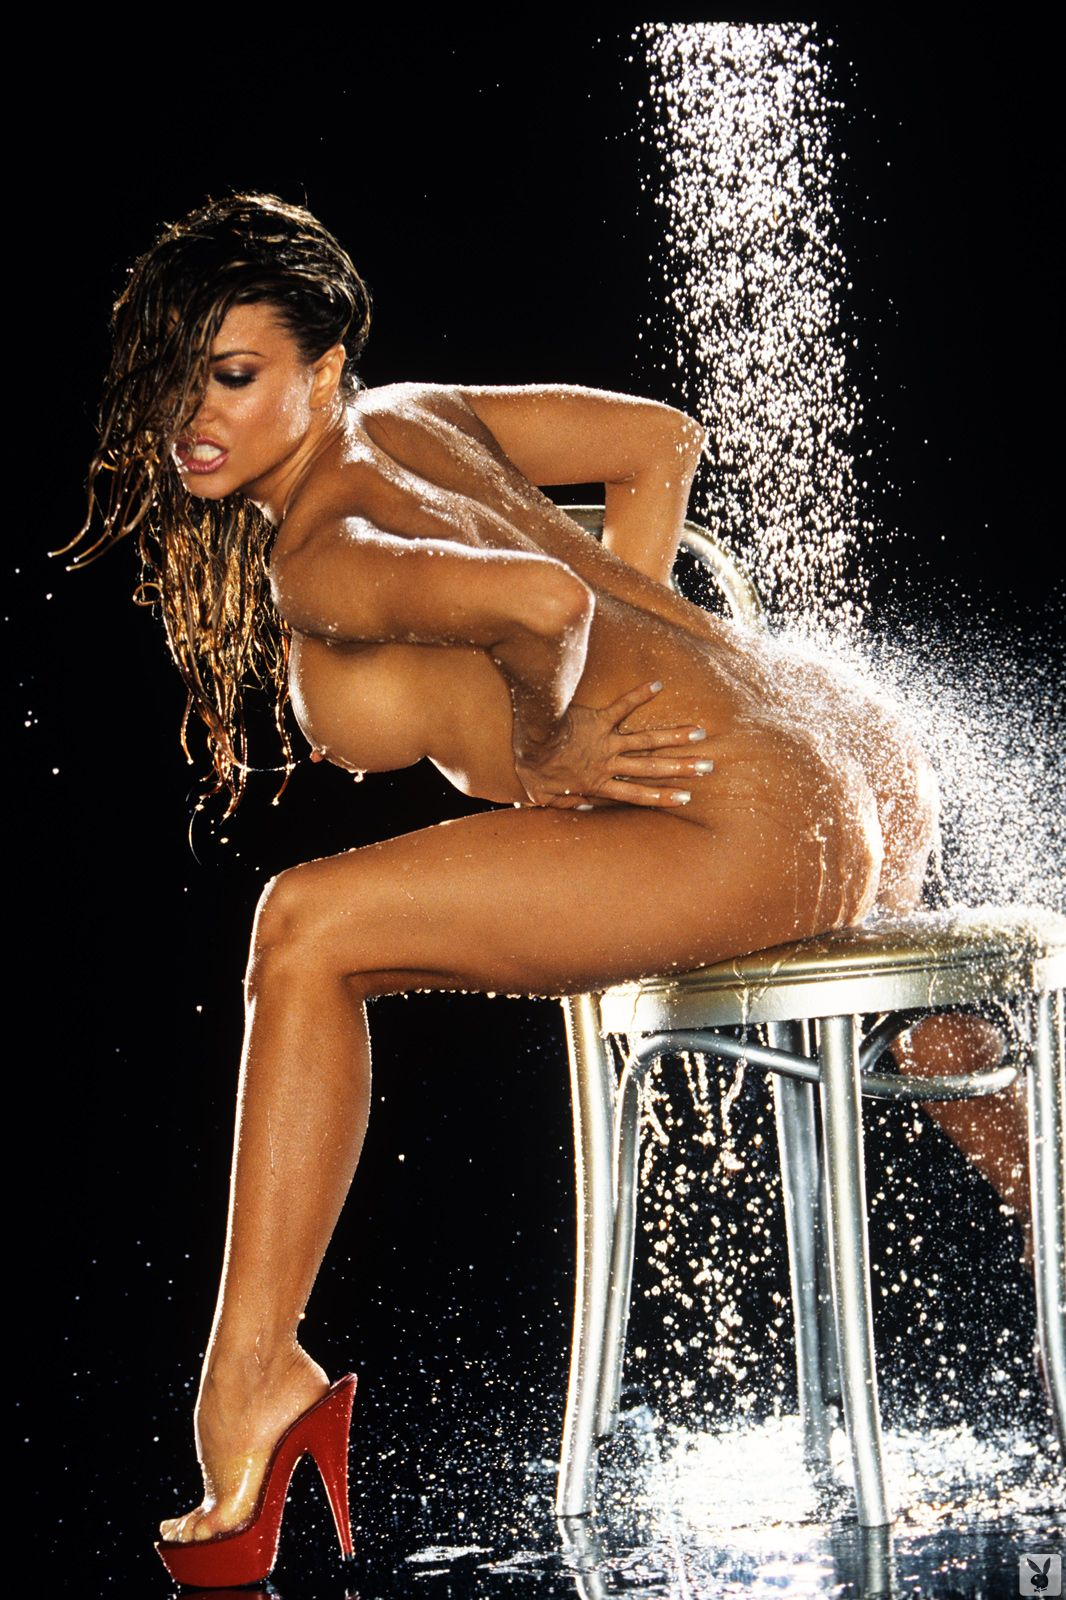 Carmen electra nude in shower hot